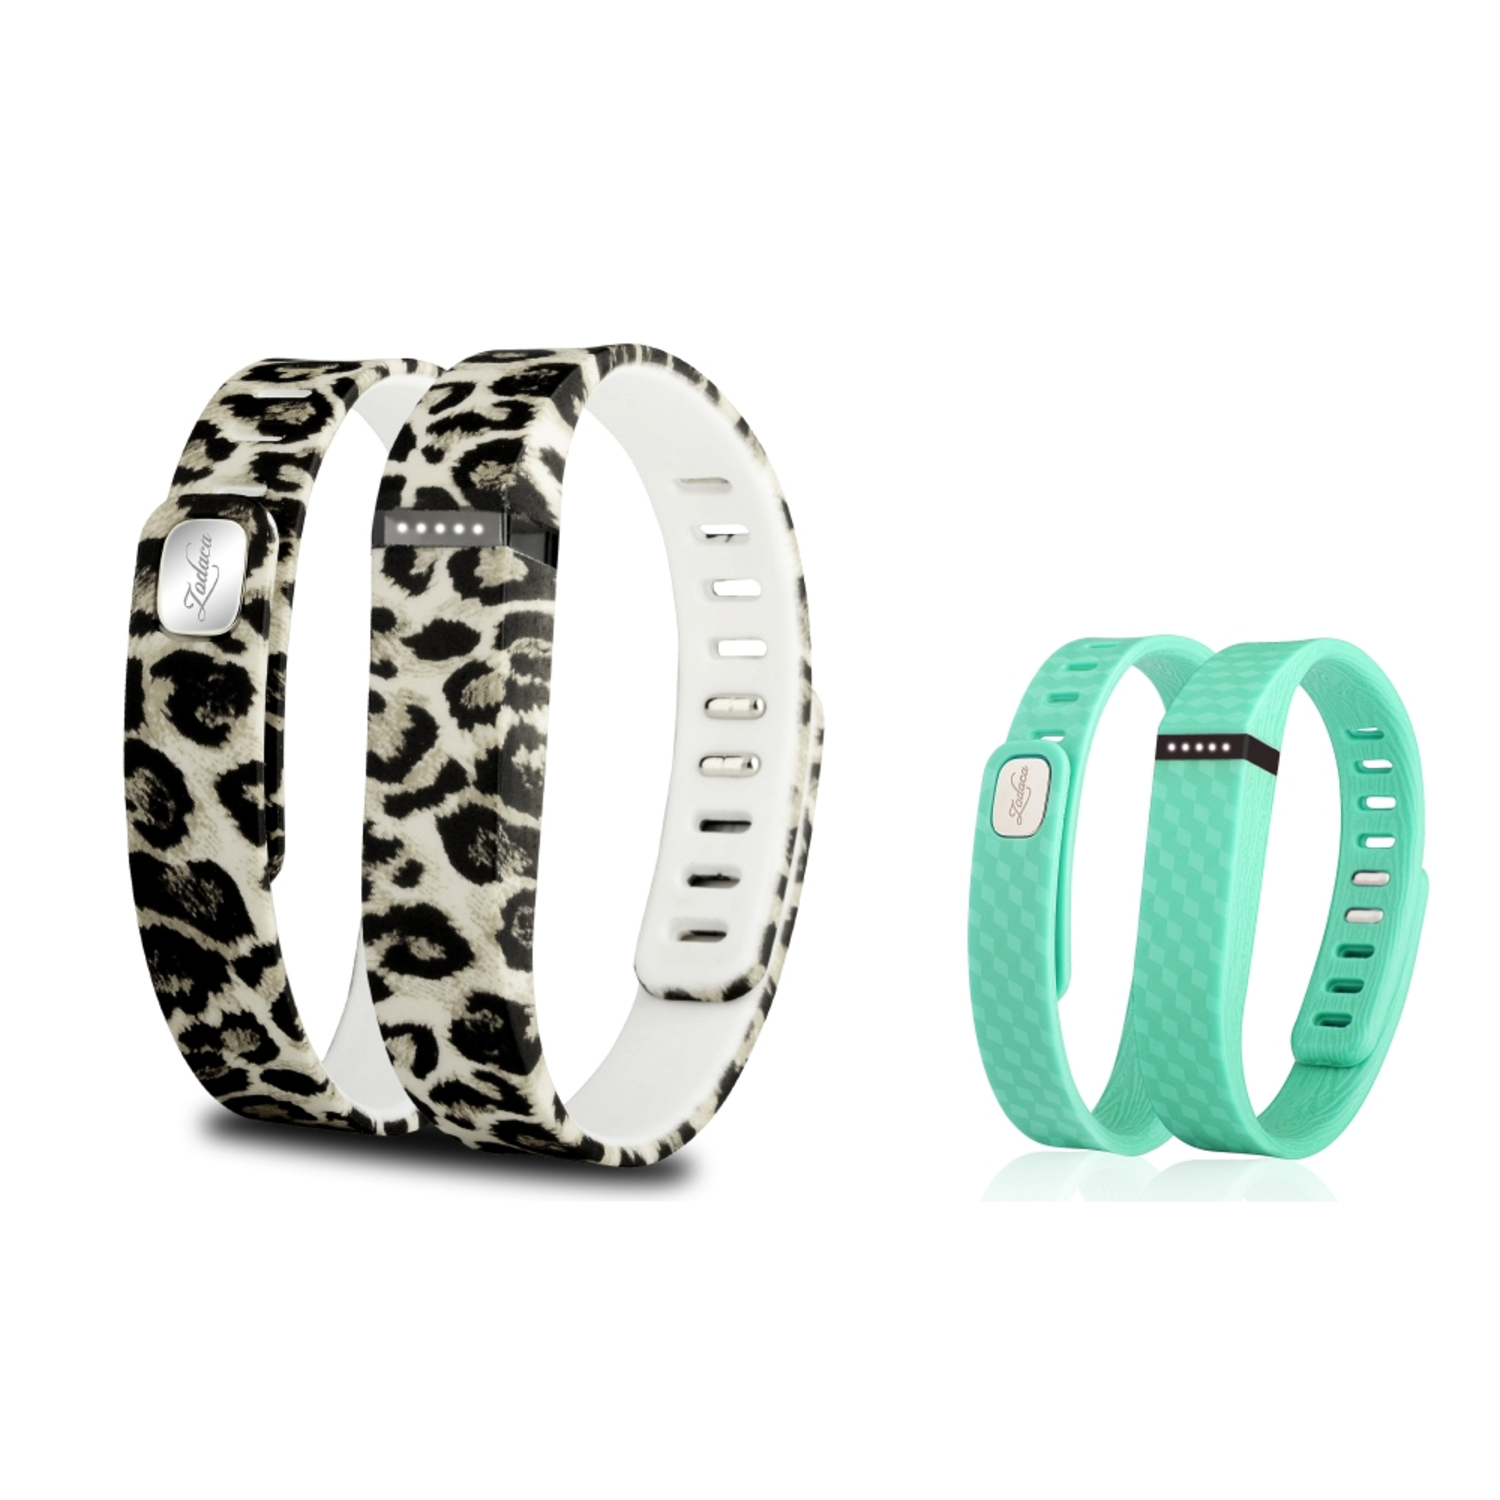 Zodaca 2-pack Small Size TPU Replacement Band Wristband with Clasp for Fitbit Flex Bracelet - Brown Leopard+Mint Green